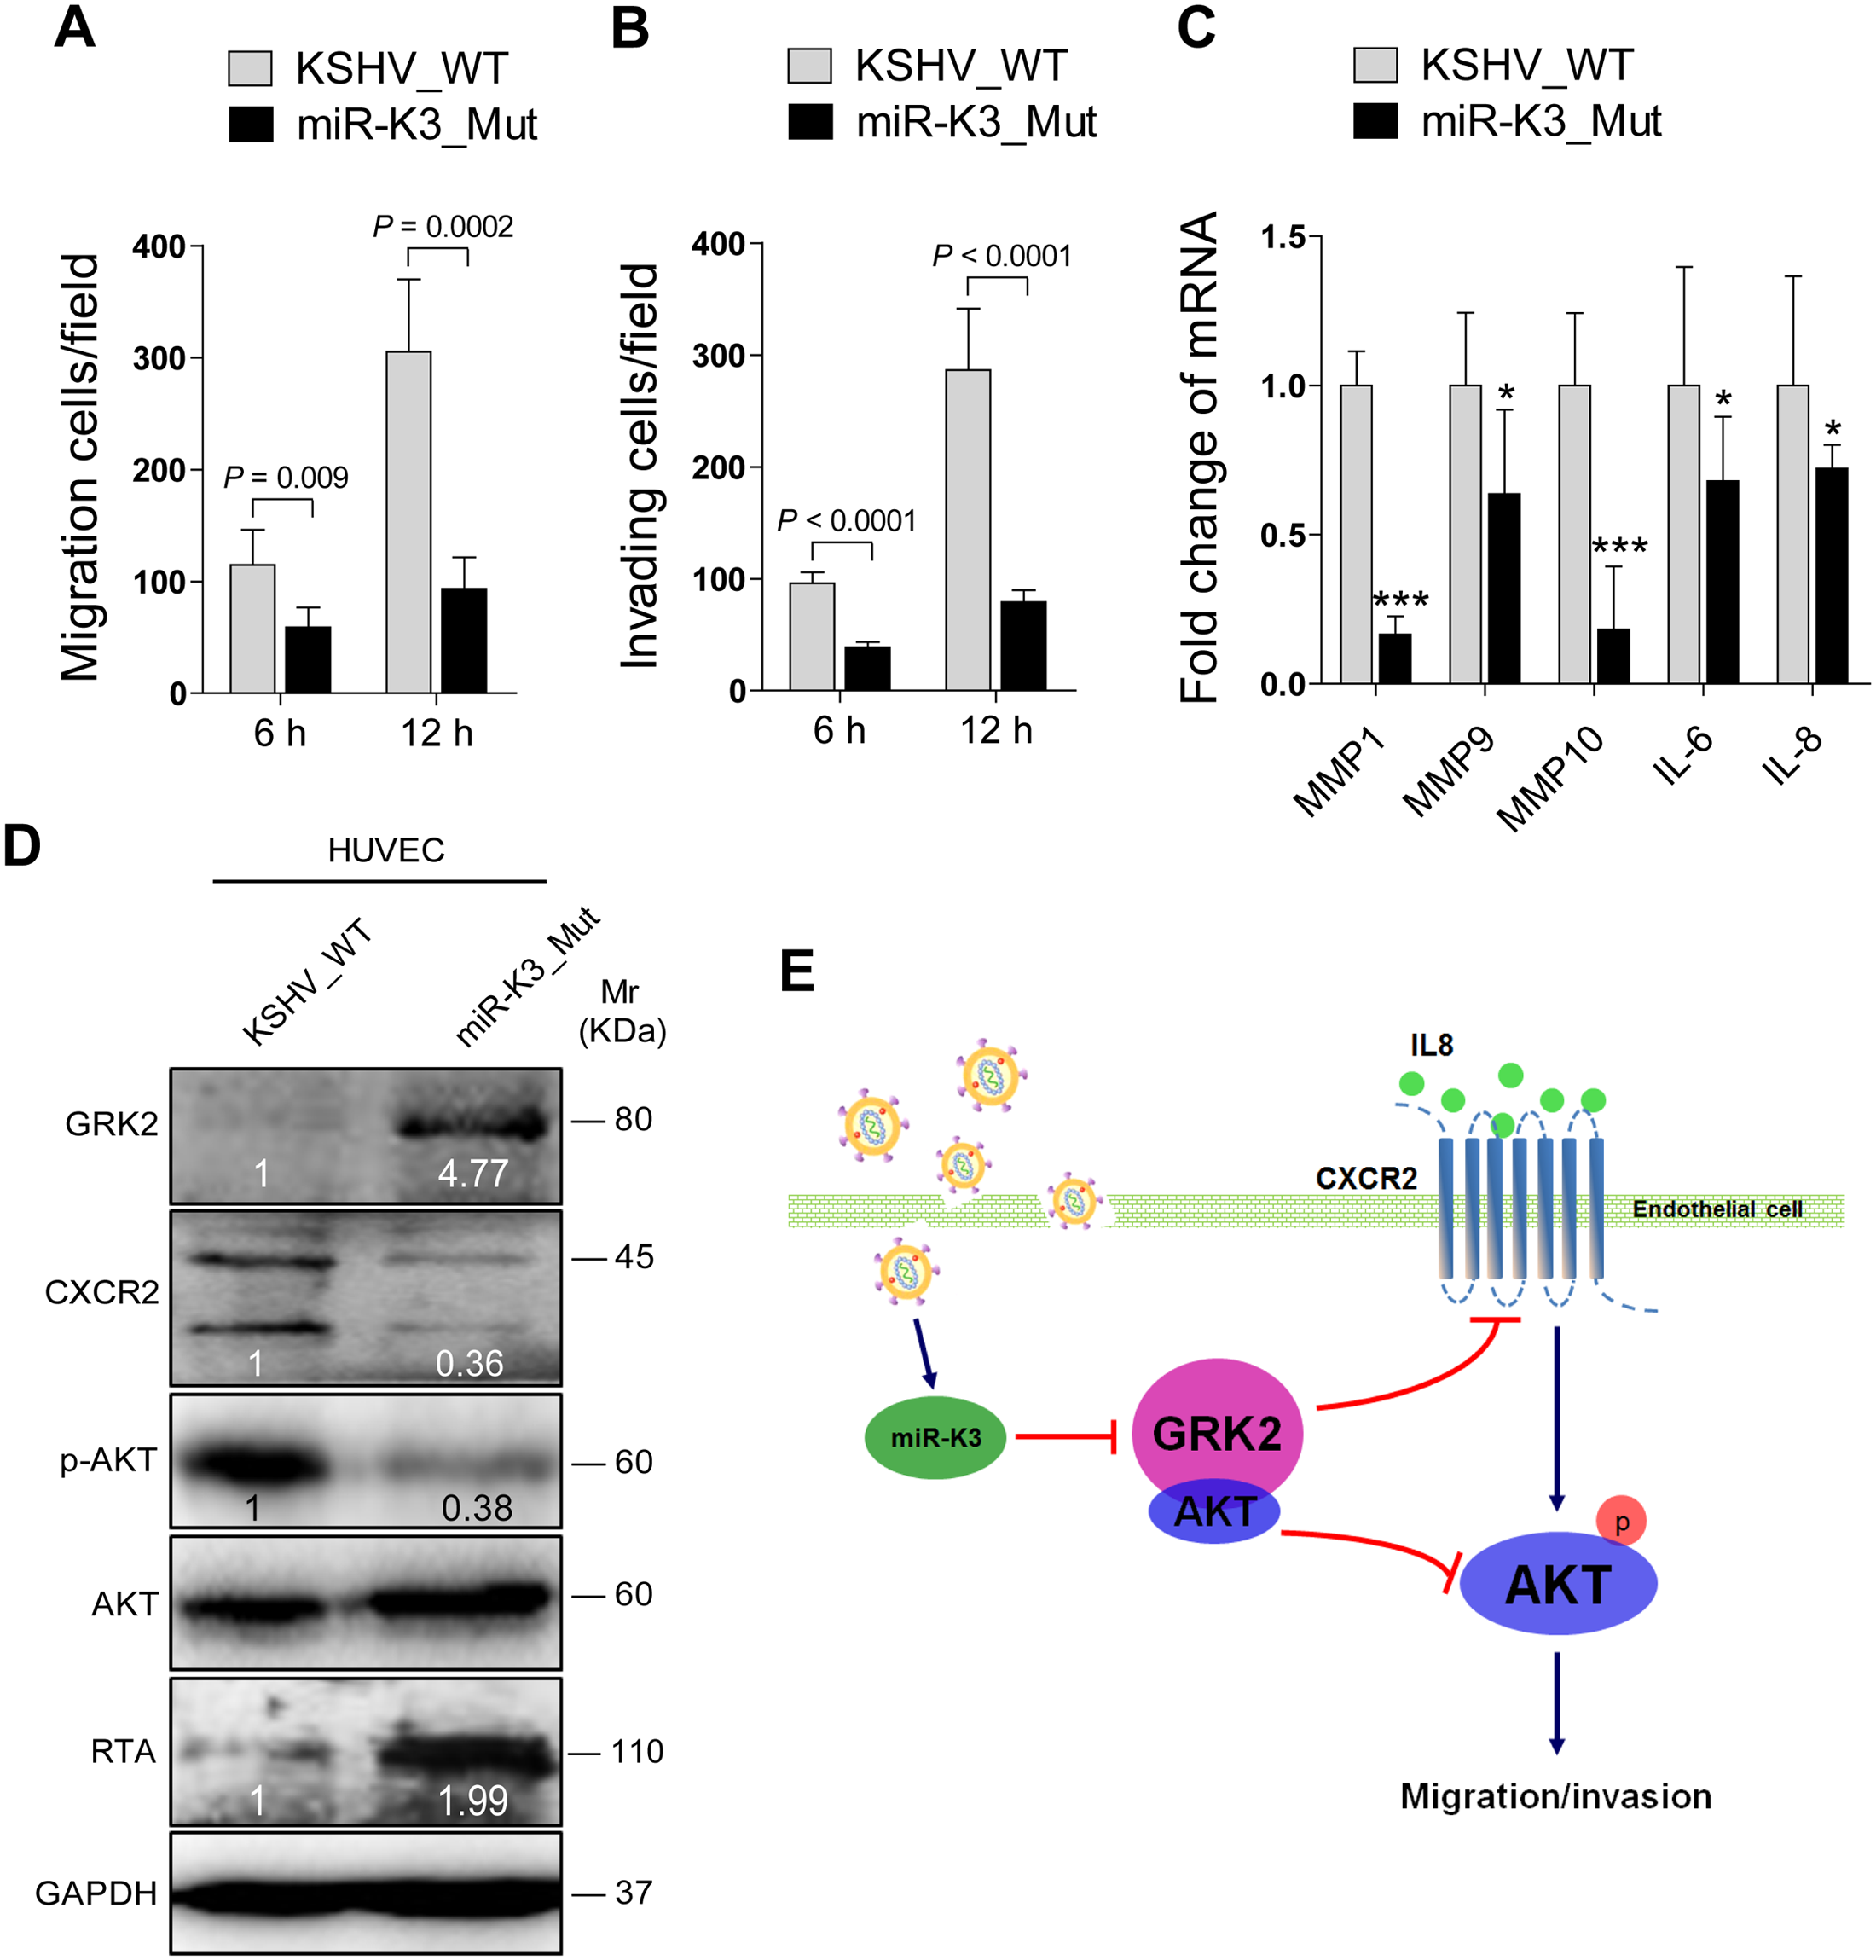 Deletion of miR-K3 from the KSHV genome attenuates KSHV induction of endothelial cell migration and invasion.